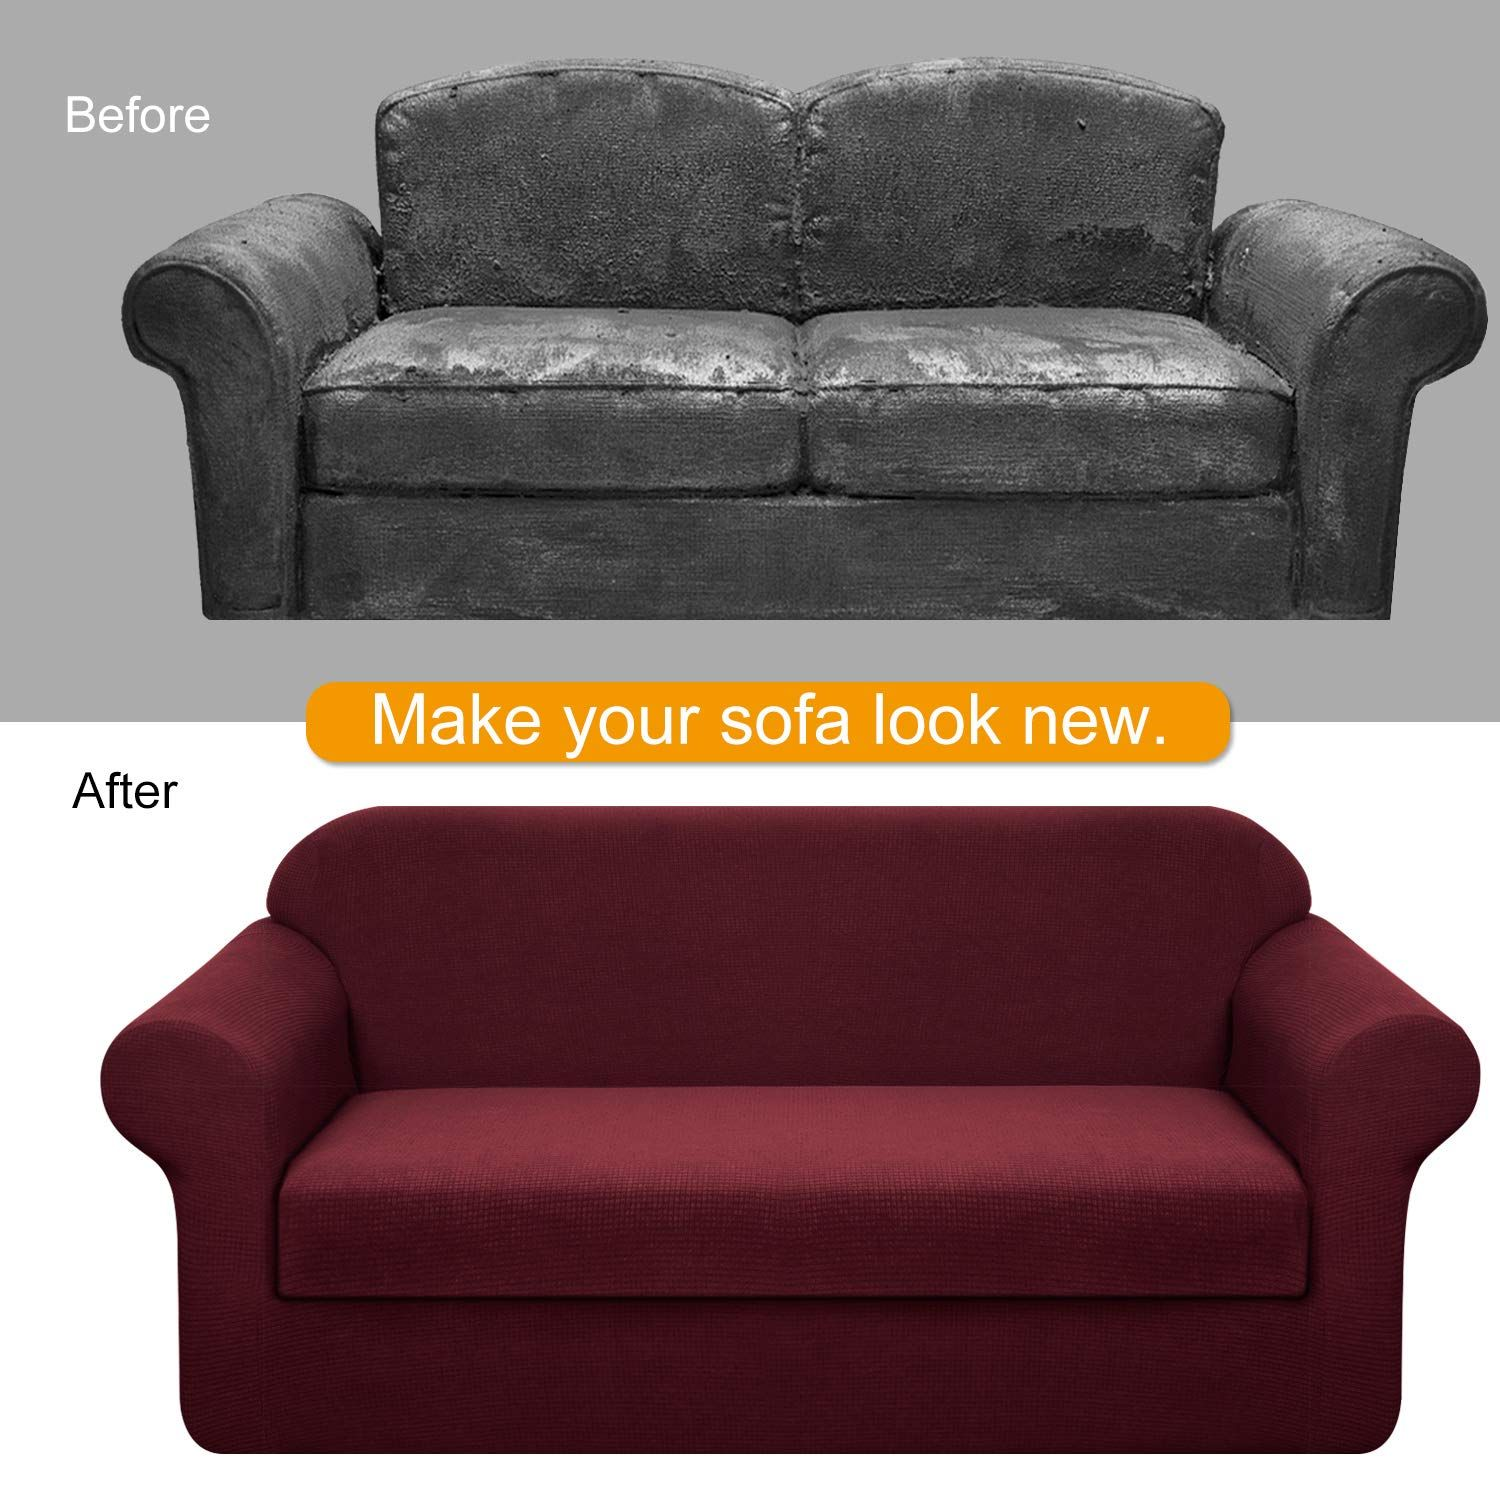 Granbest Stretch Sofa Slipcovers 3 Cushion Couch Covers Water